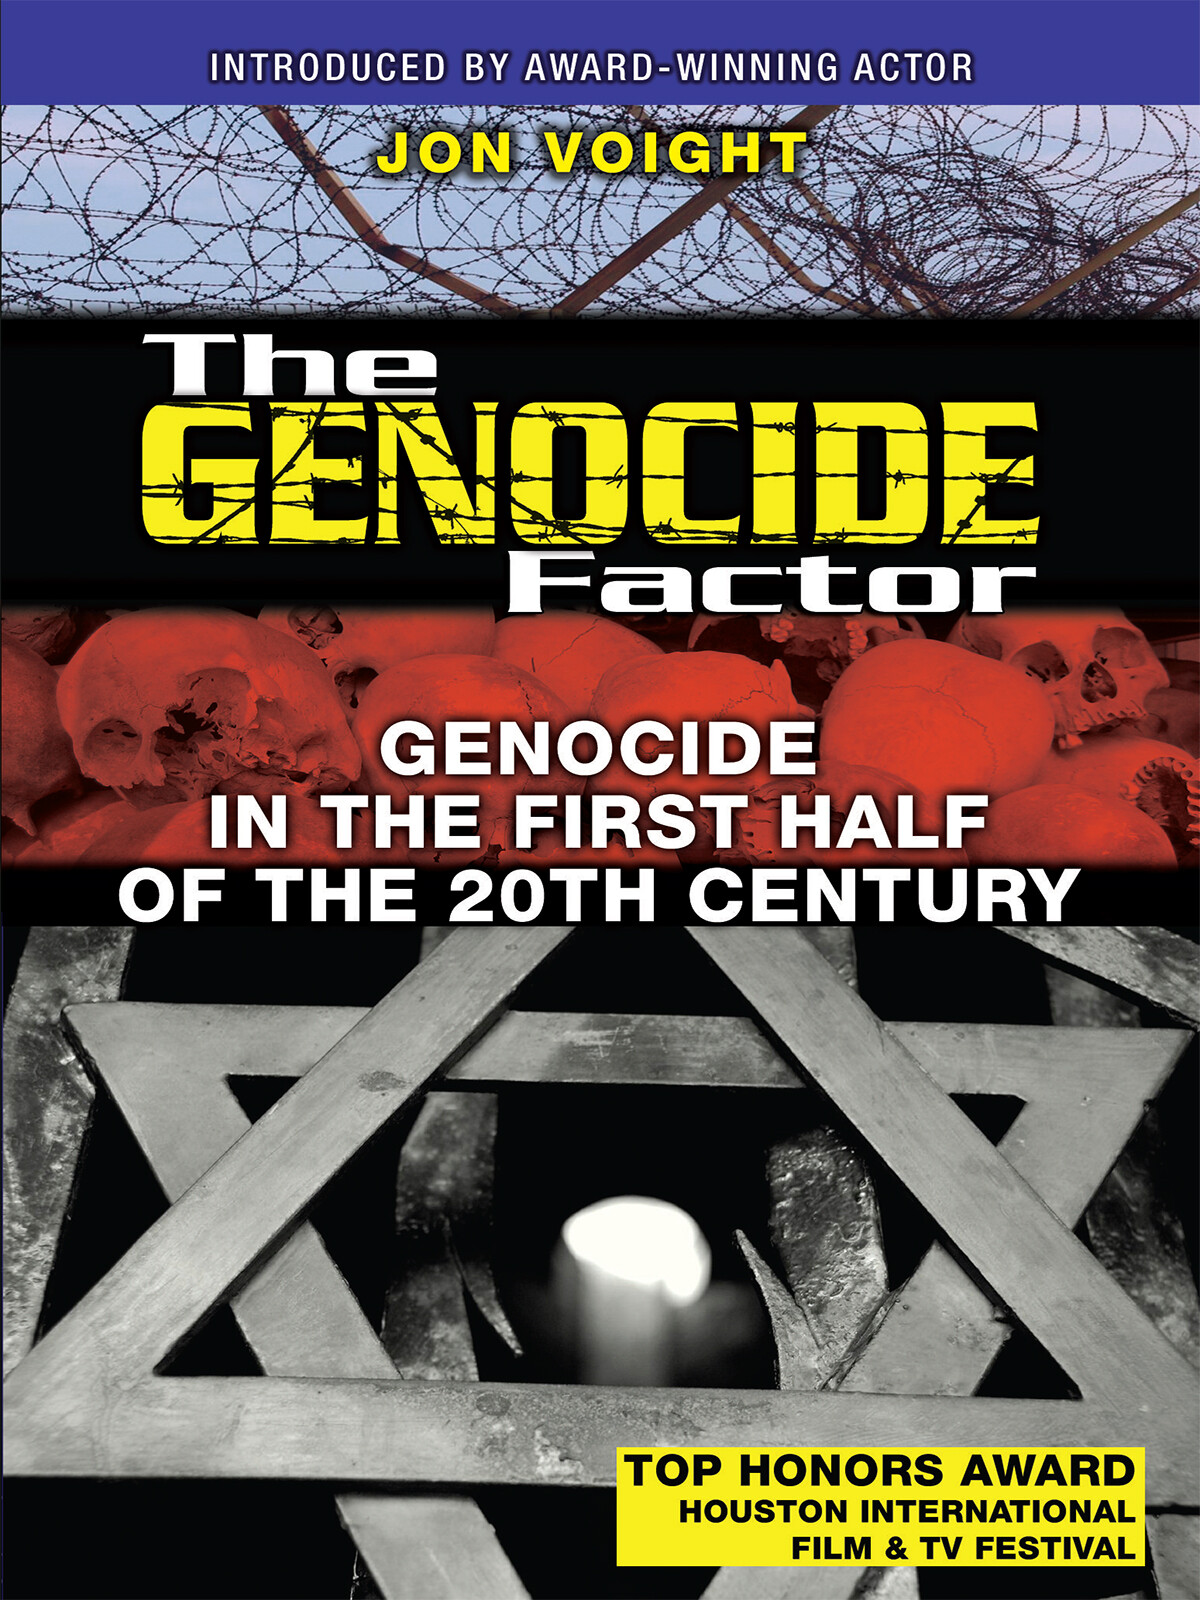 L4809 - Genocide in the First Half of the 20th Century